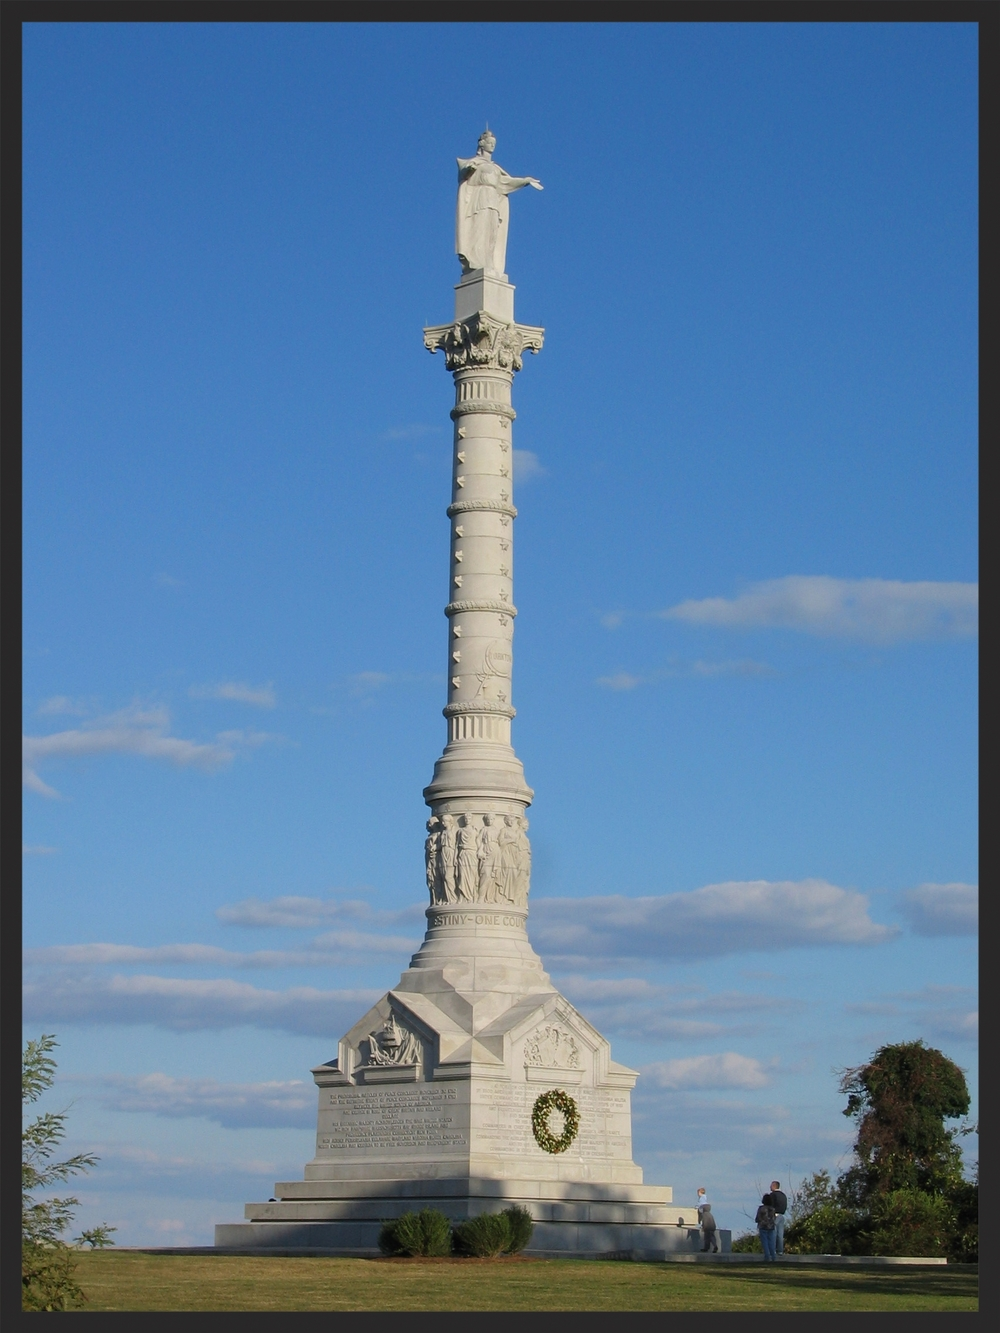 The Yorktown Monument is a highlight of any Yorktown battlefield visit.